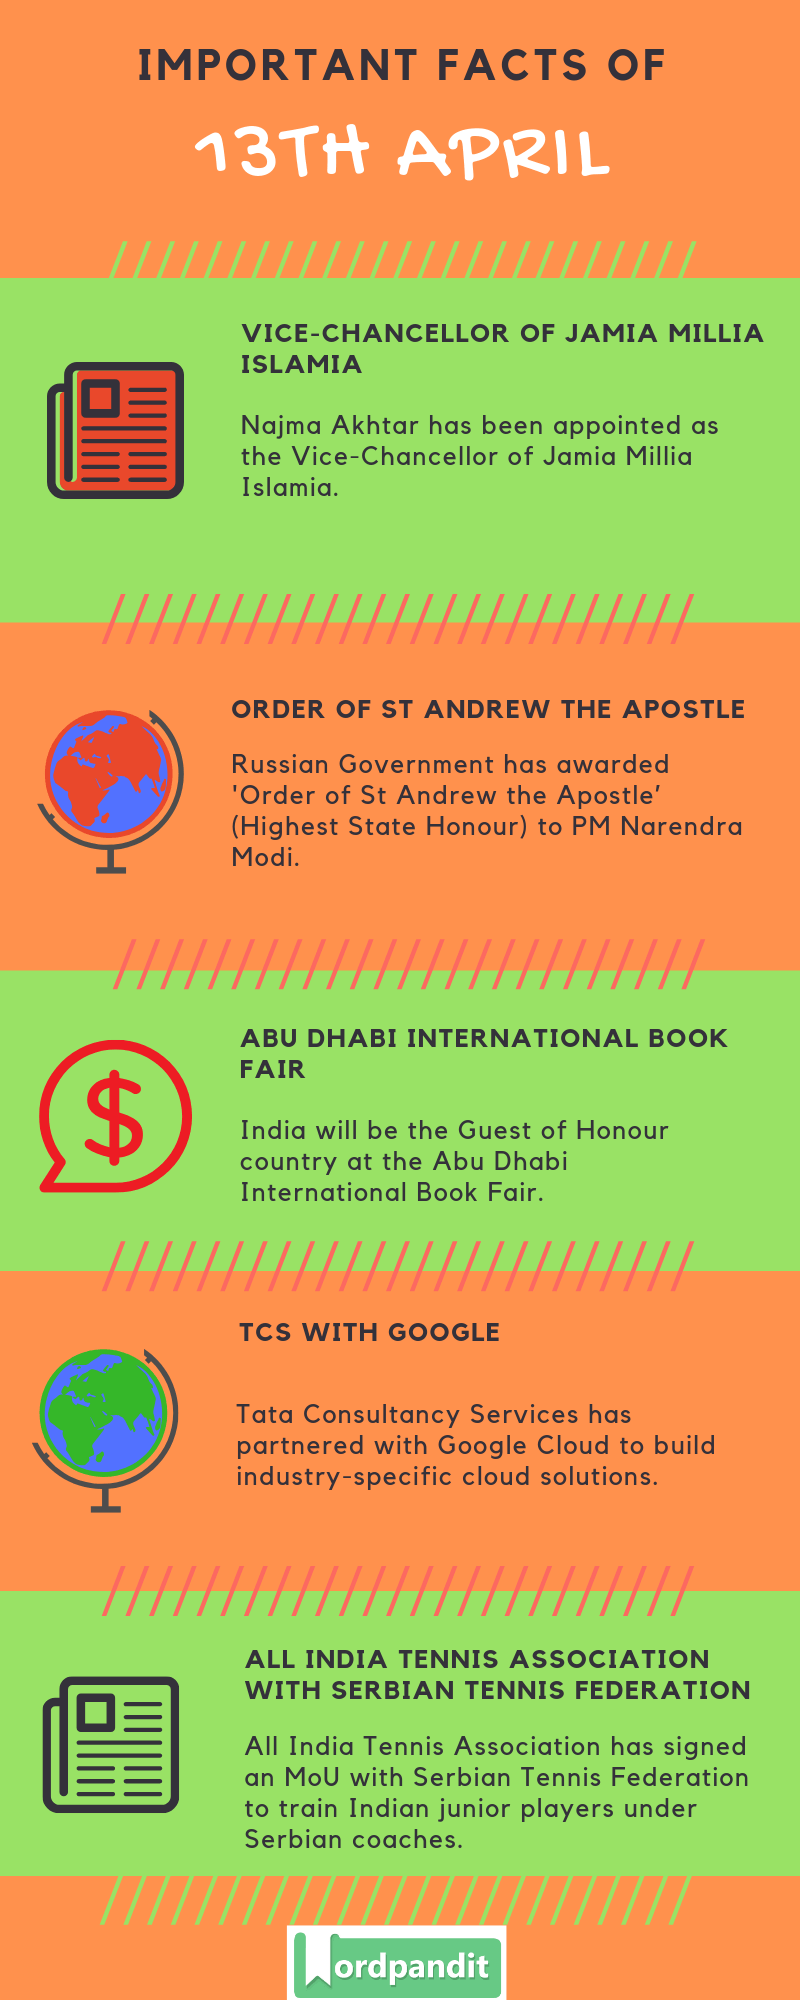 Daily Current Affairs 13 April 2019 Current Affairs Quiz 13 April 2019 Current Affairs Infographic